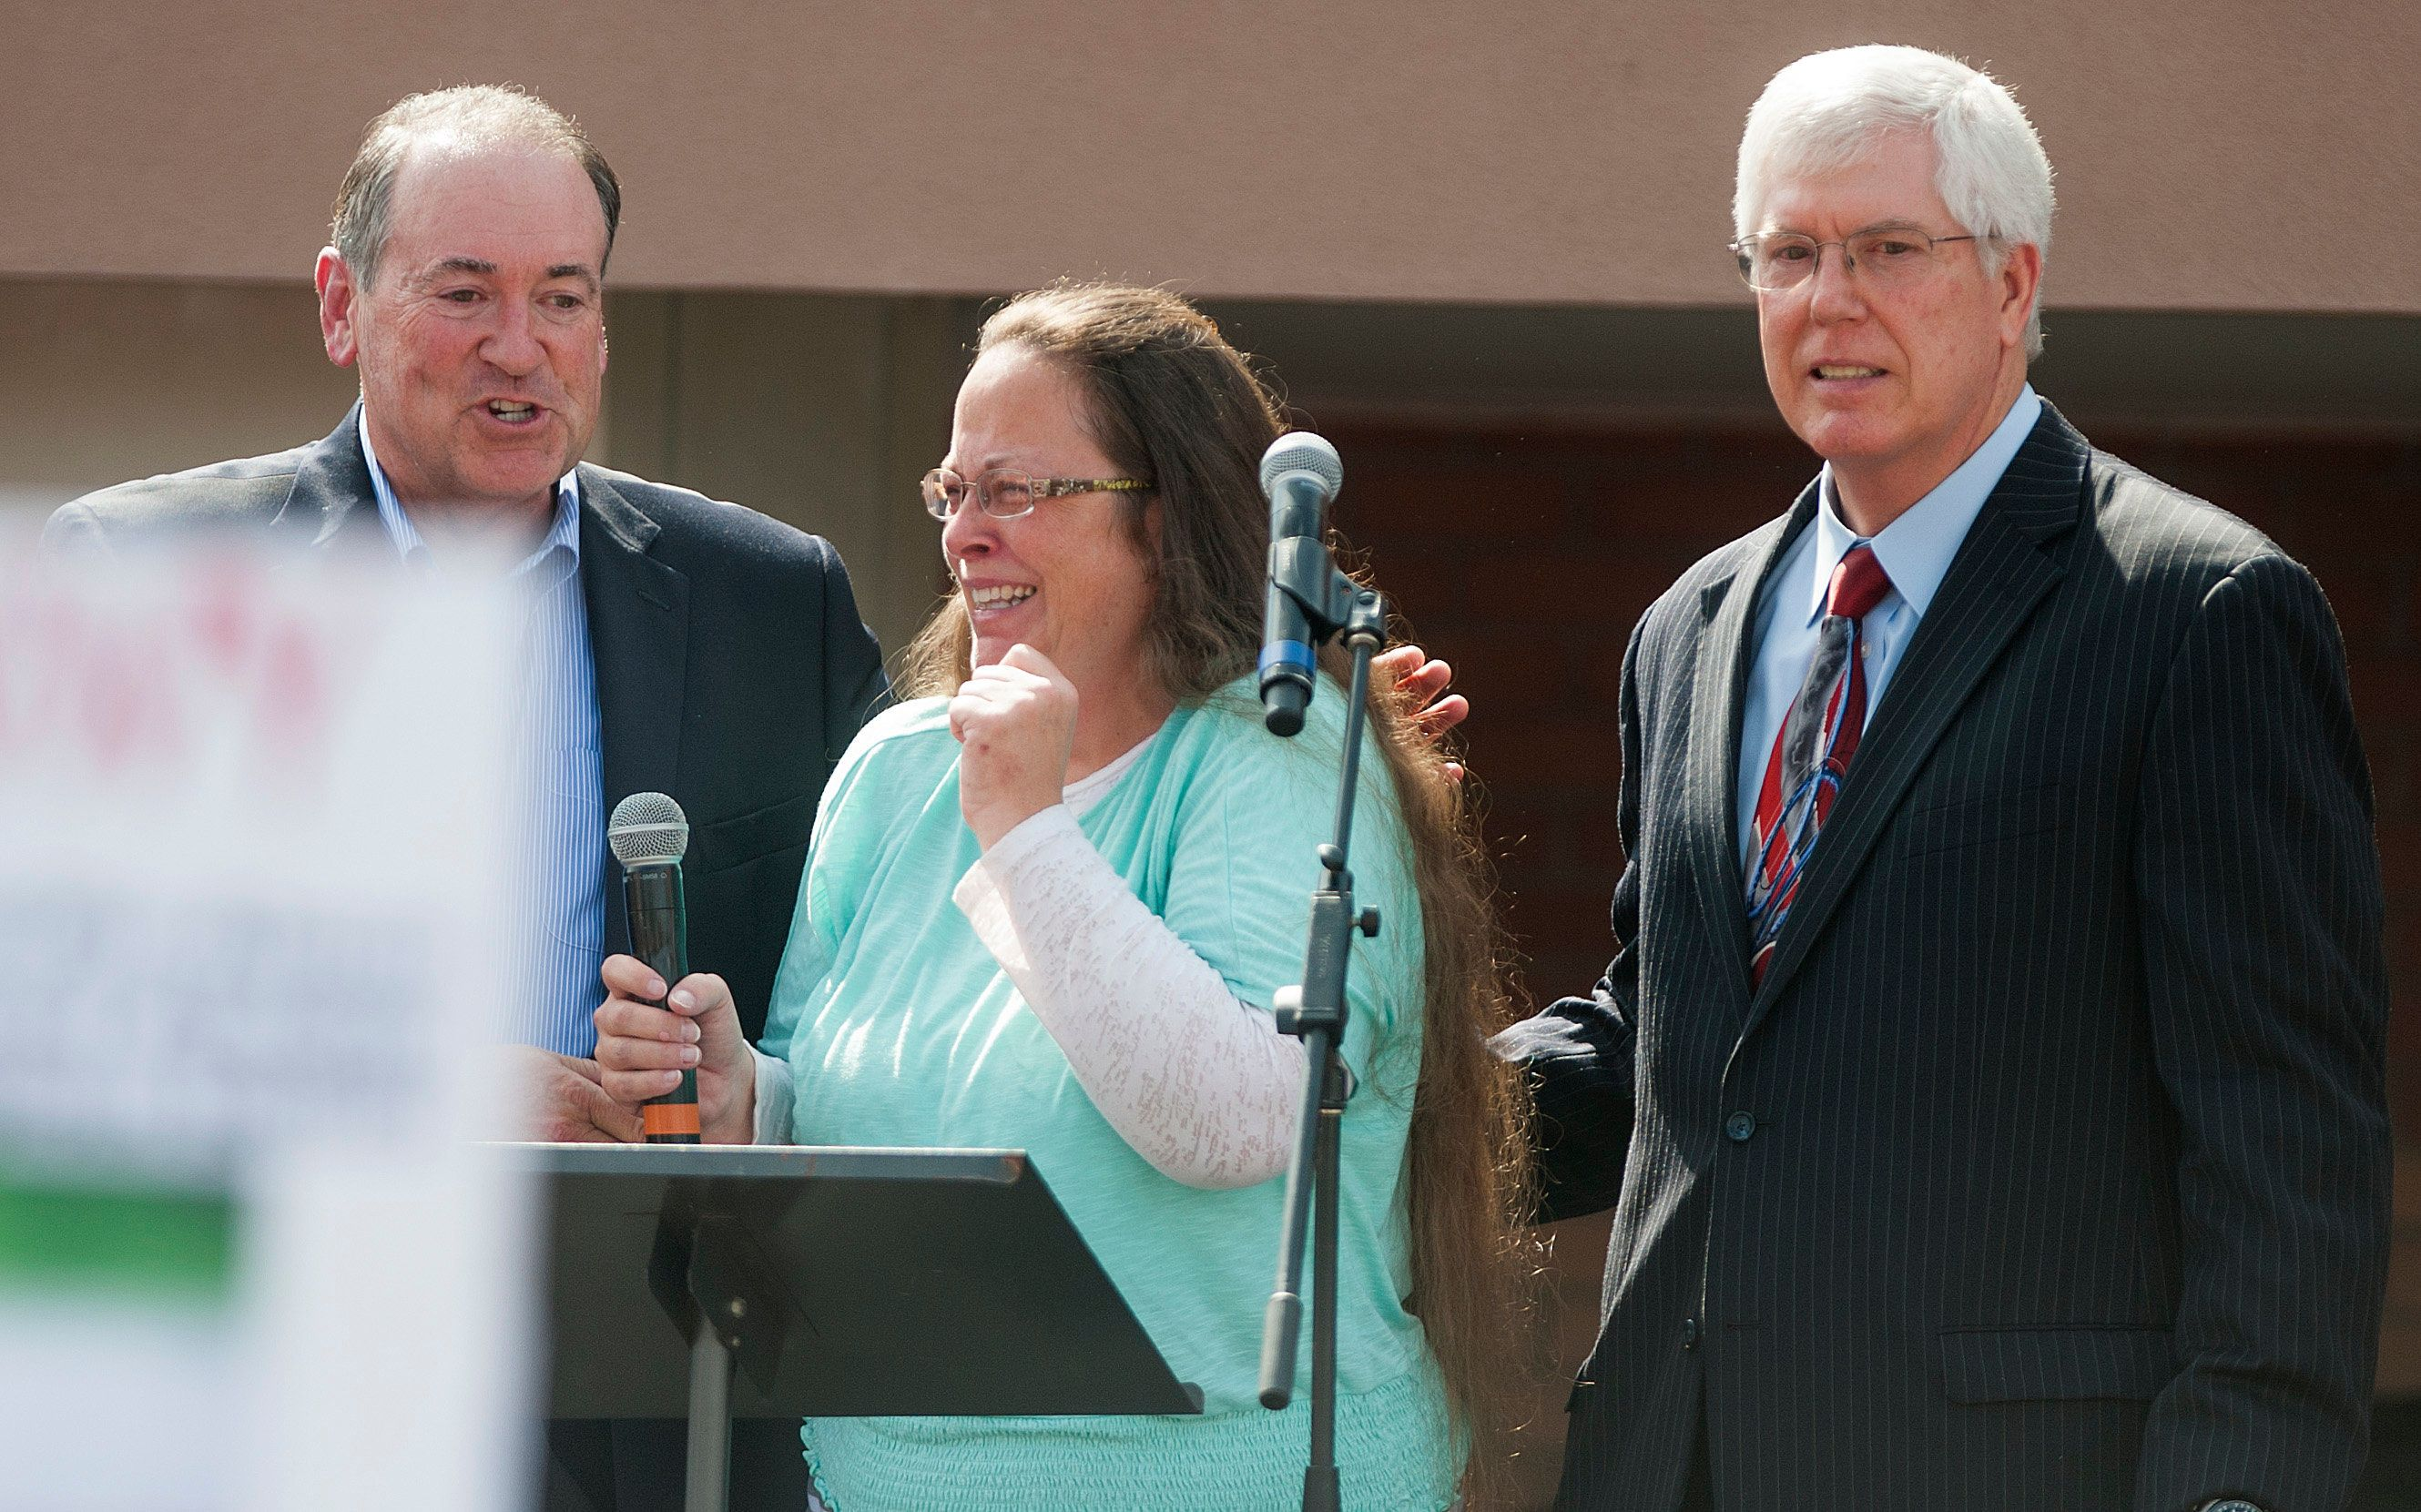 GRAYSON, KY - SEPTEMBER 8:  Rowan County Clerk of Courts Kim Davis stands with her attorney Mat Staver (R) and Republican presidential candidate Mike Huckabee (L) in front of the Carter County Detention Center on September 8, 2015 in Grayson, Kentucky. Davis was ordered to jail last week for contempt of court after refusing a court order to issue marriage licenses to same-sex couples. (Photo by Ty Wright/Getty Images)